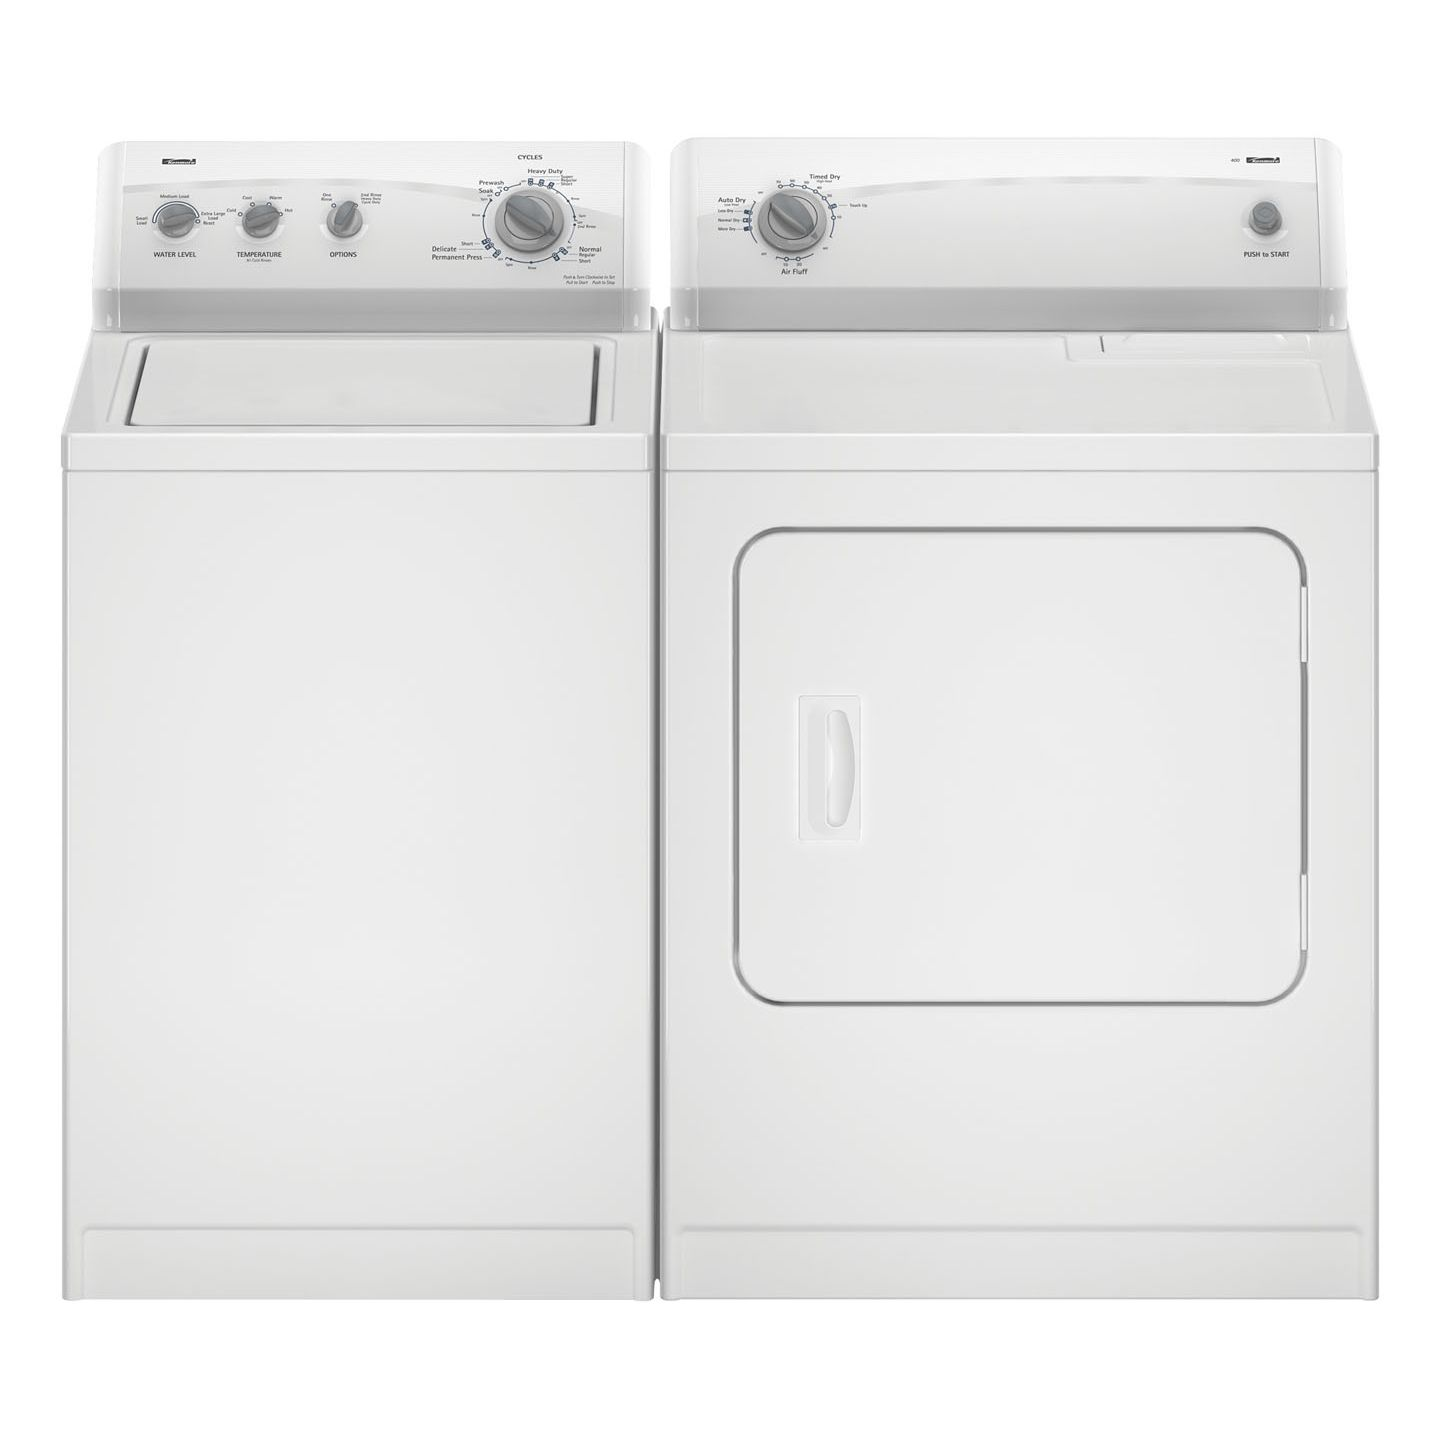 Kenmore 600 5.9 cu. ft. Electric Flatback Dryer - 6965